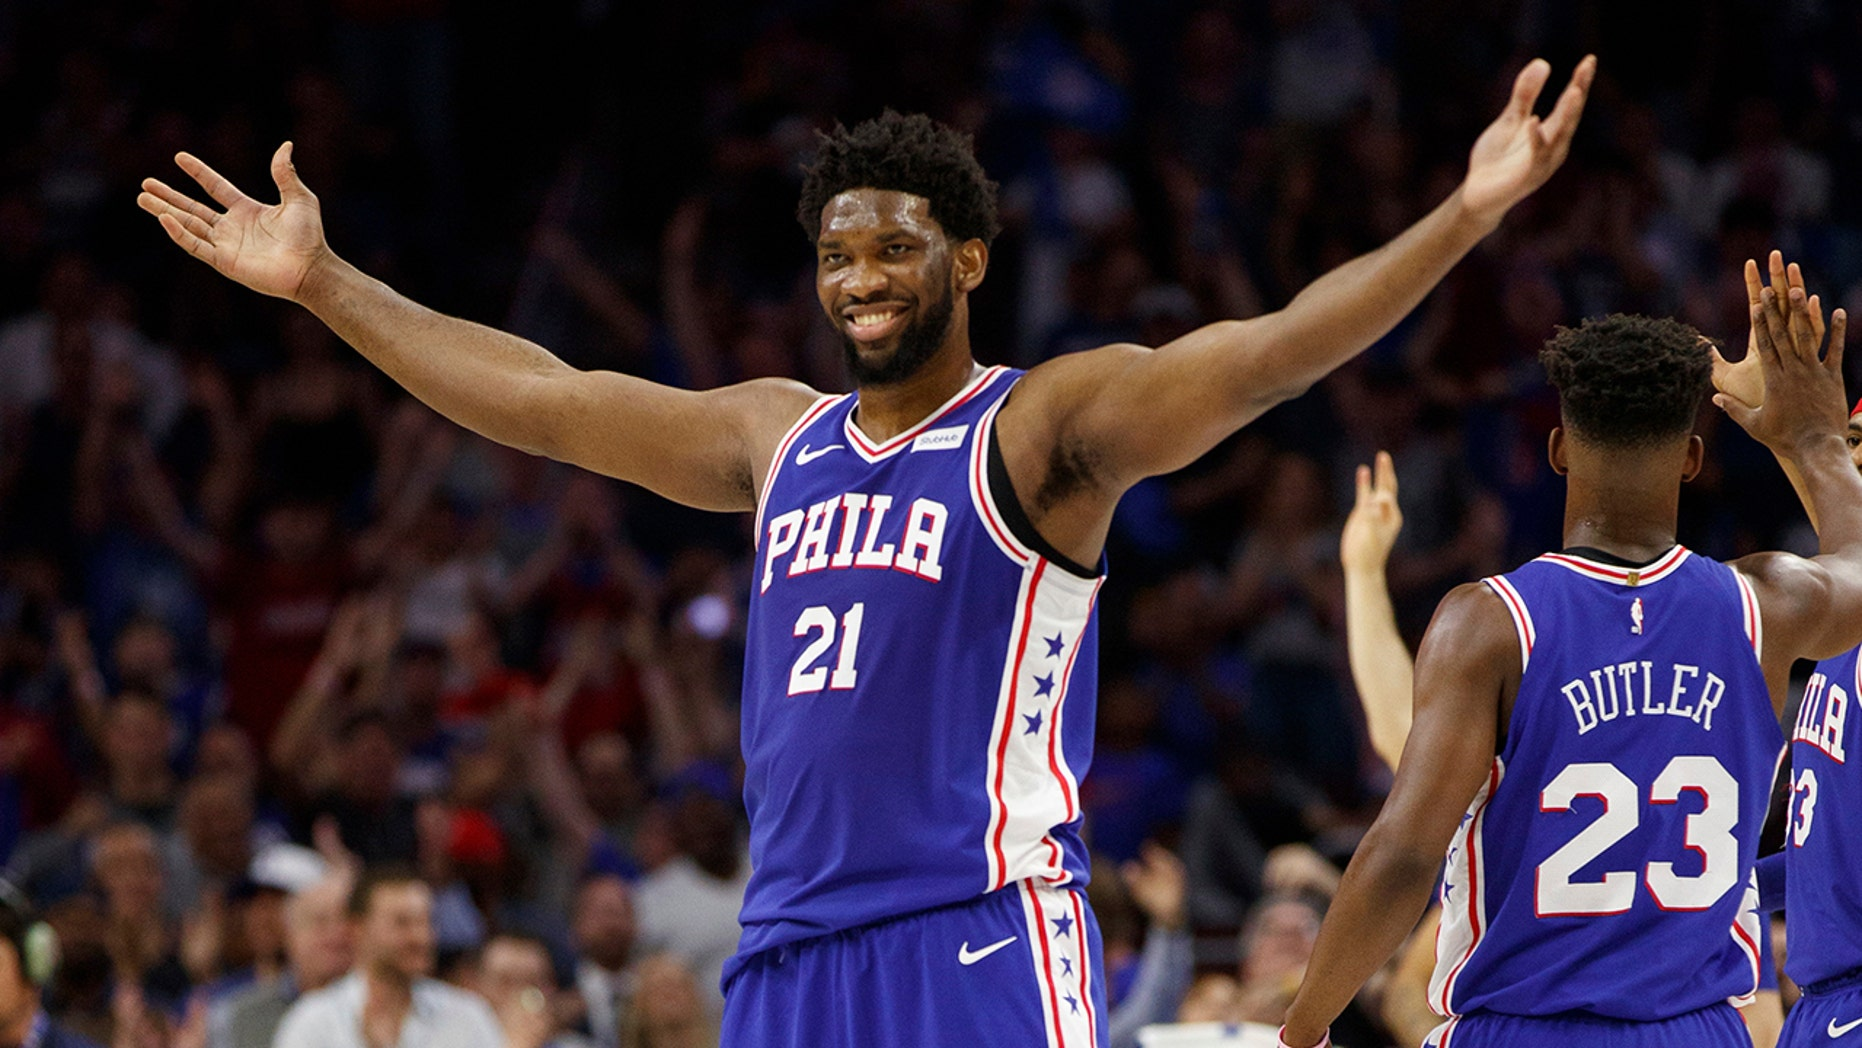 Philadelphia 76ers' Joel Embiid, of Cameroon, reacts to his basket during the first half in Game 5 of a first-round NBA basketball playoff series against the Brooklyn Nets, Tuesday, April 23, 2019, in Philadelphia. (Associated Press)